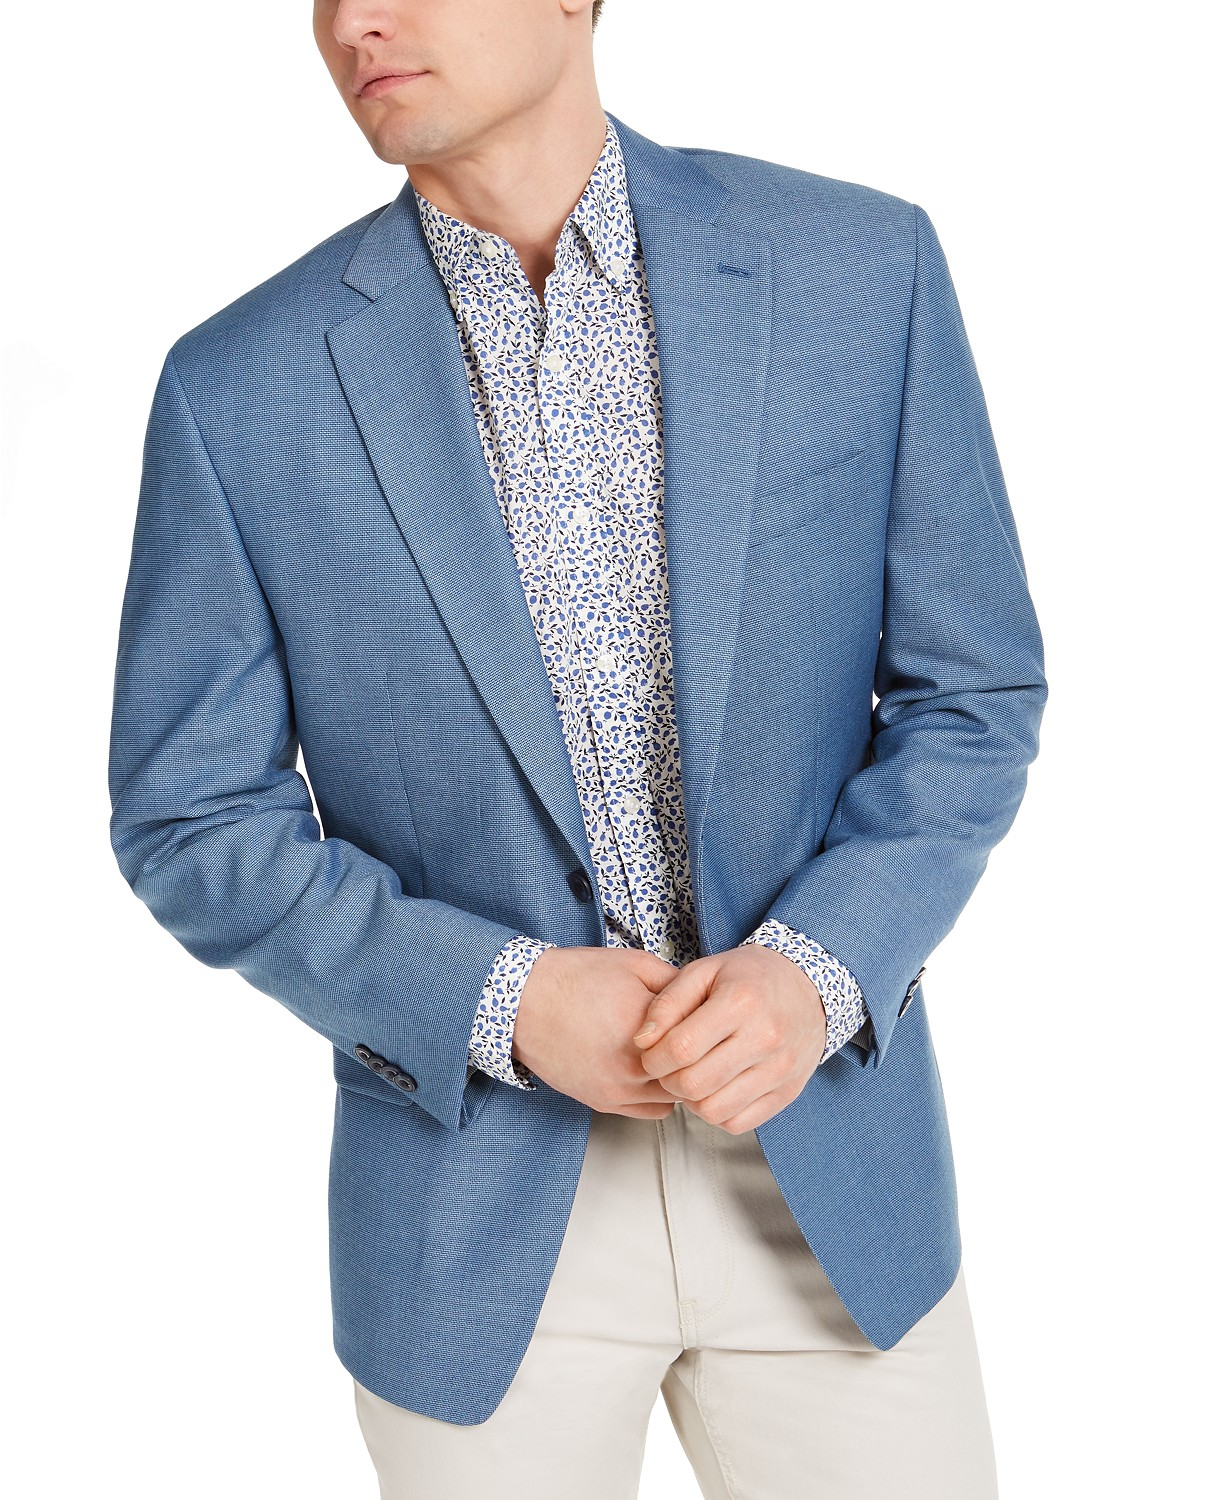 Michael Kors Men's Classic-Fit Light Blue Sport Coat